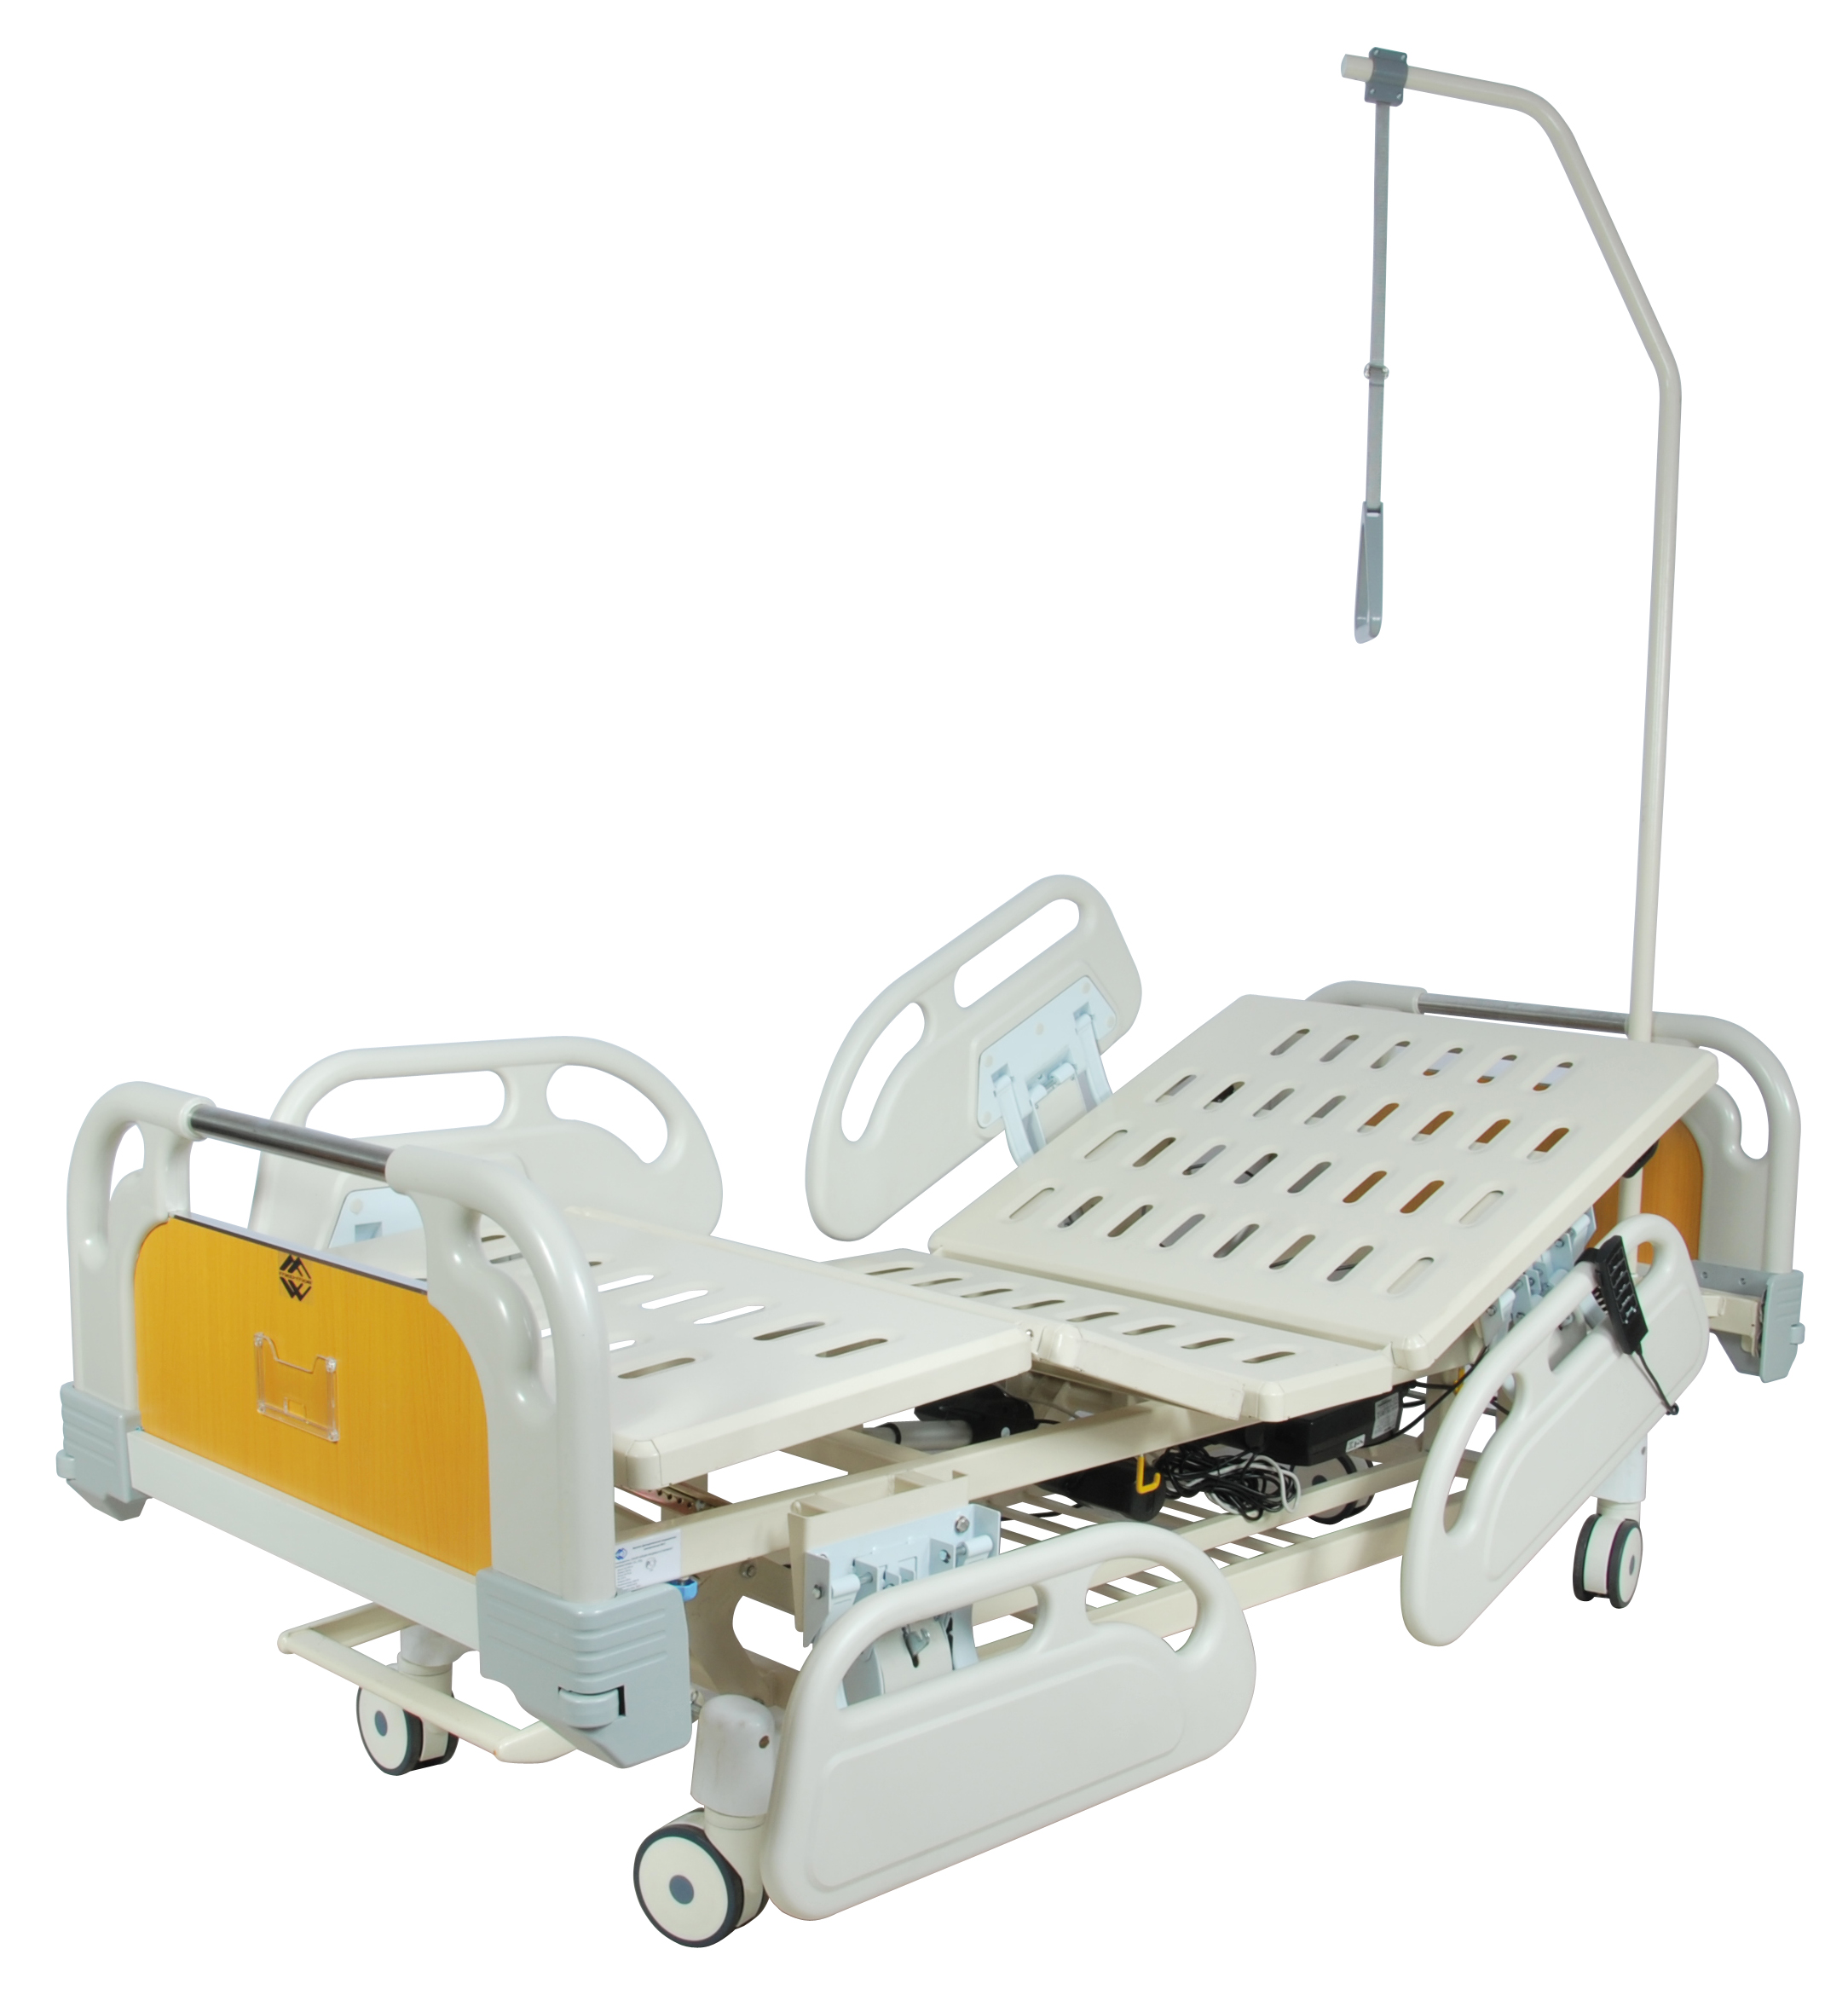 <p>medical beds DB-3 in the amount of 10 pieces or similar WANTED&nbsp;</p>  <p>&nbsp;</p>  <p>&nbsp;</p>  <p><em>(translated from russian)</em></p>